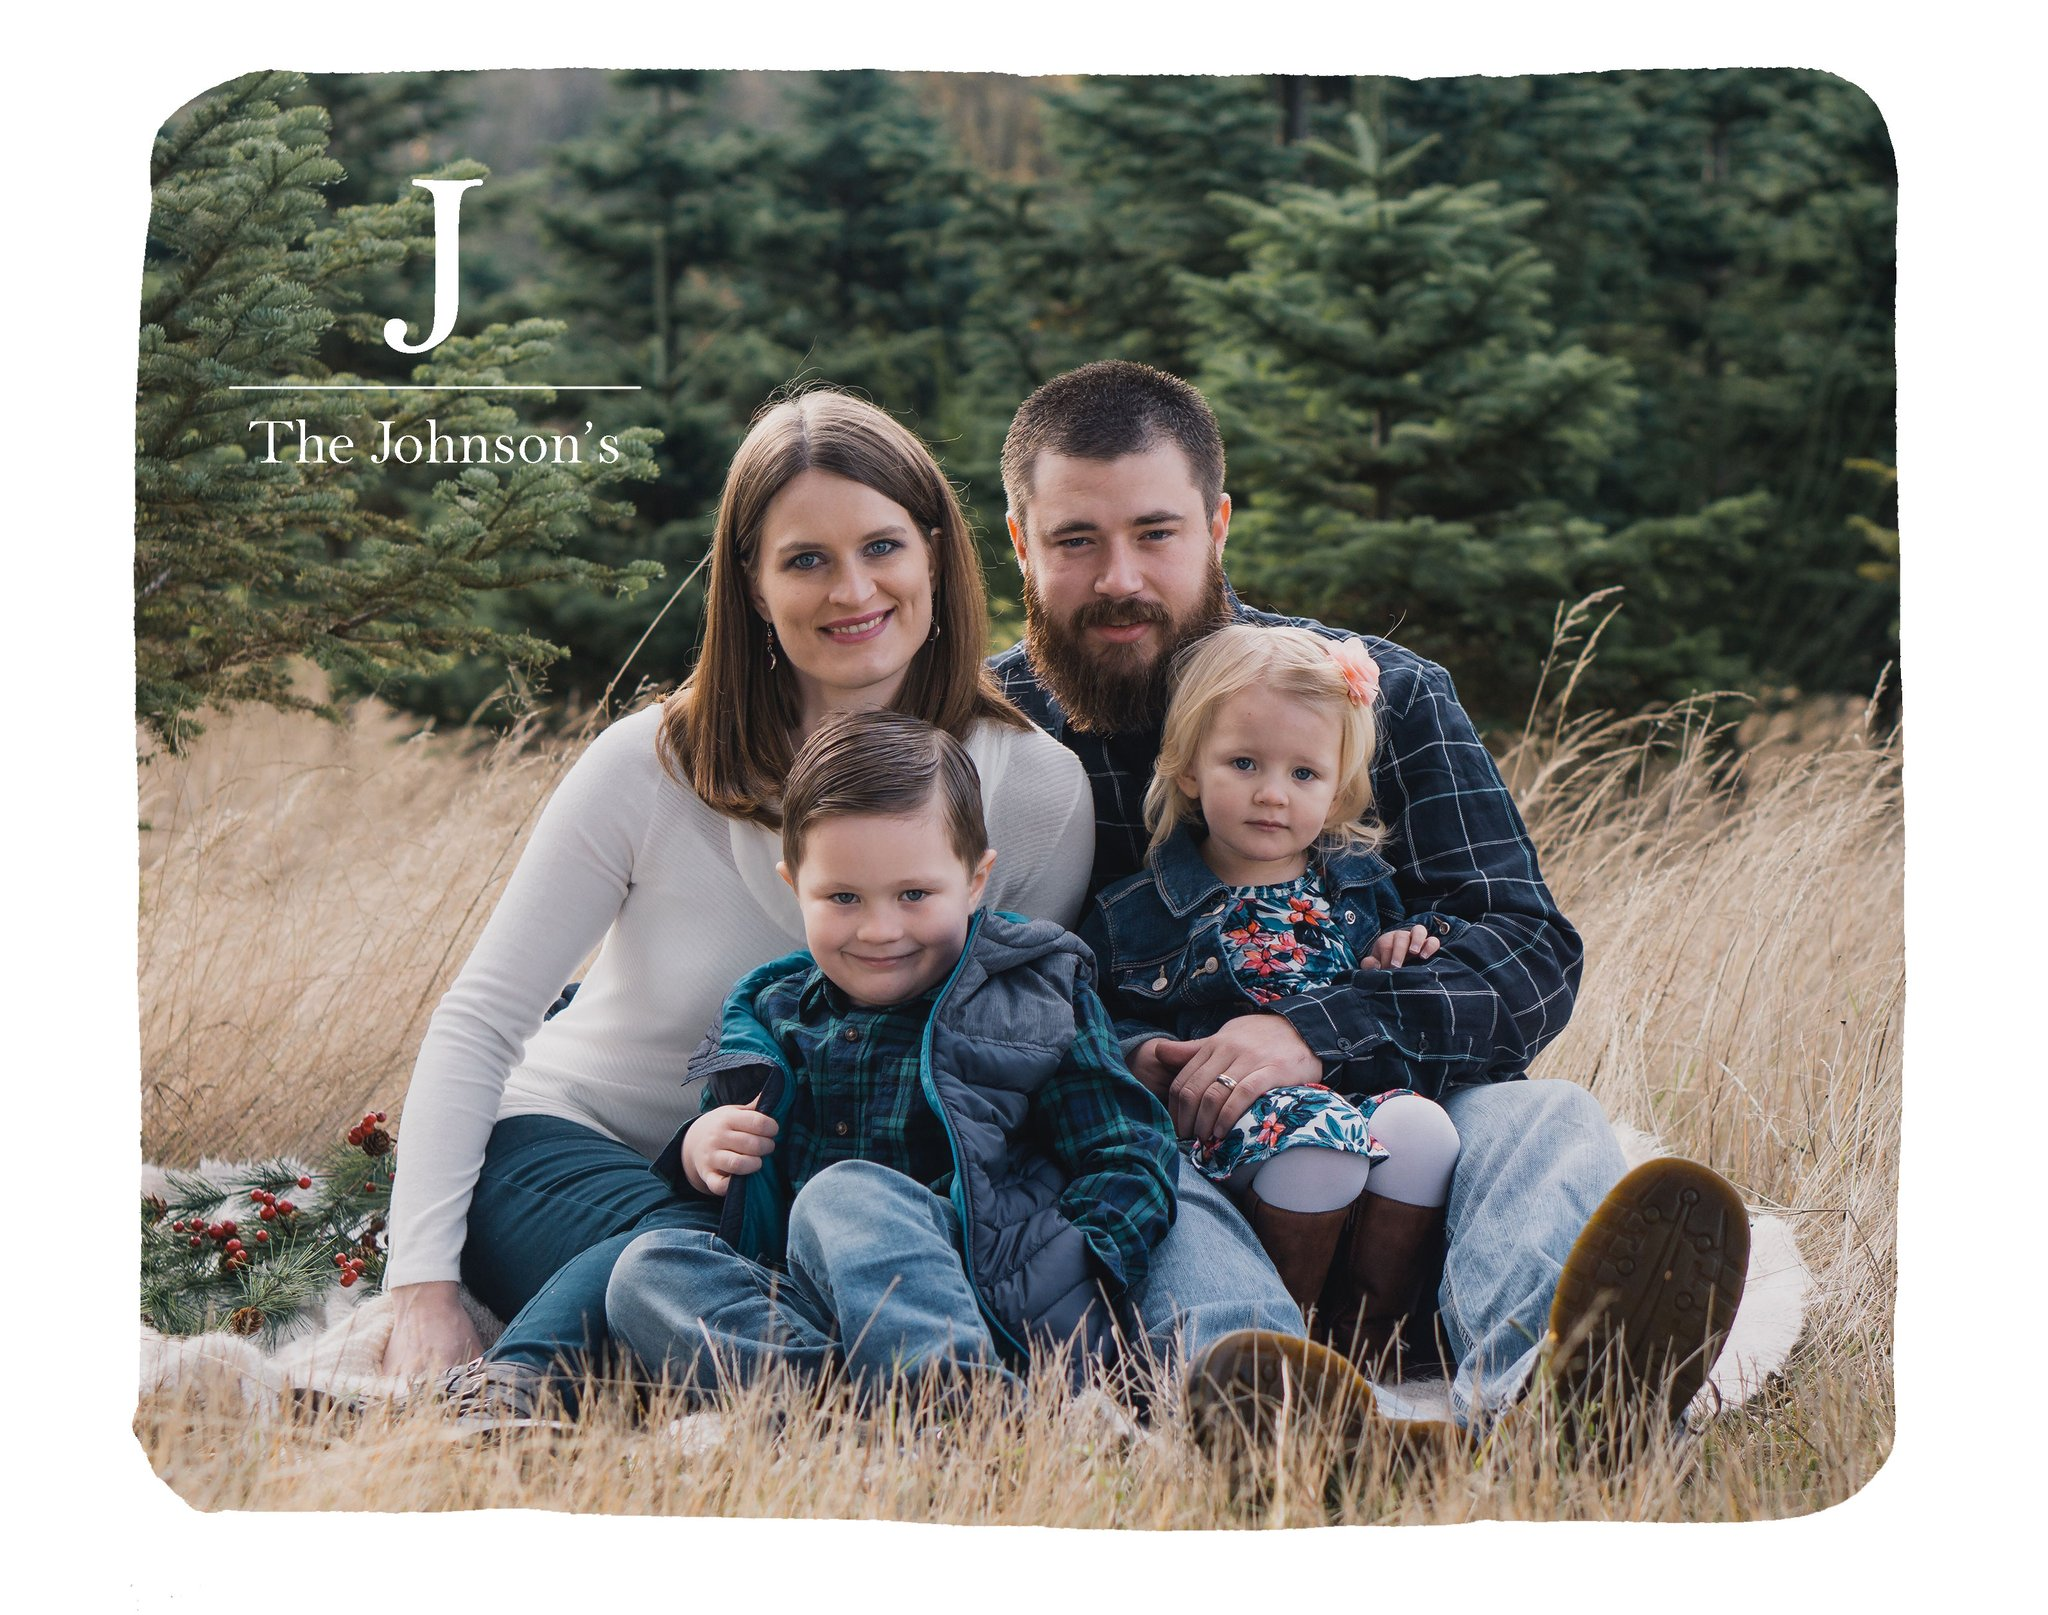 Custom photo blanket featuring married couple and two children in a landscape setting